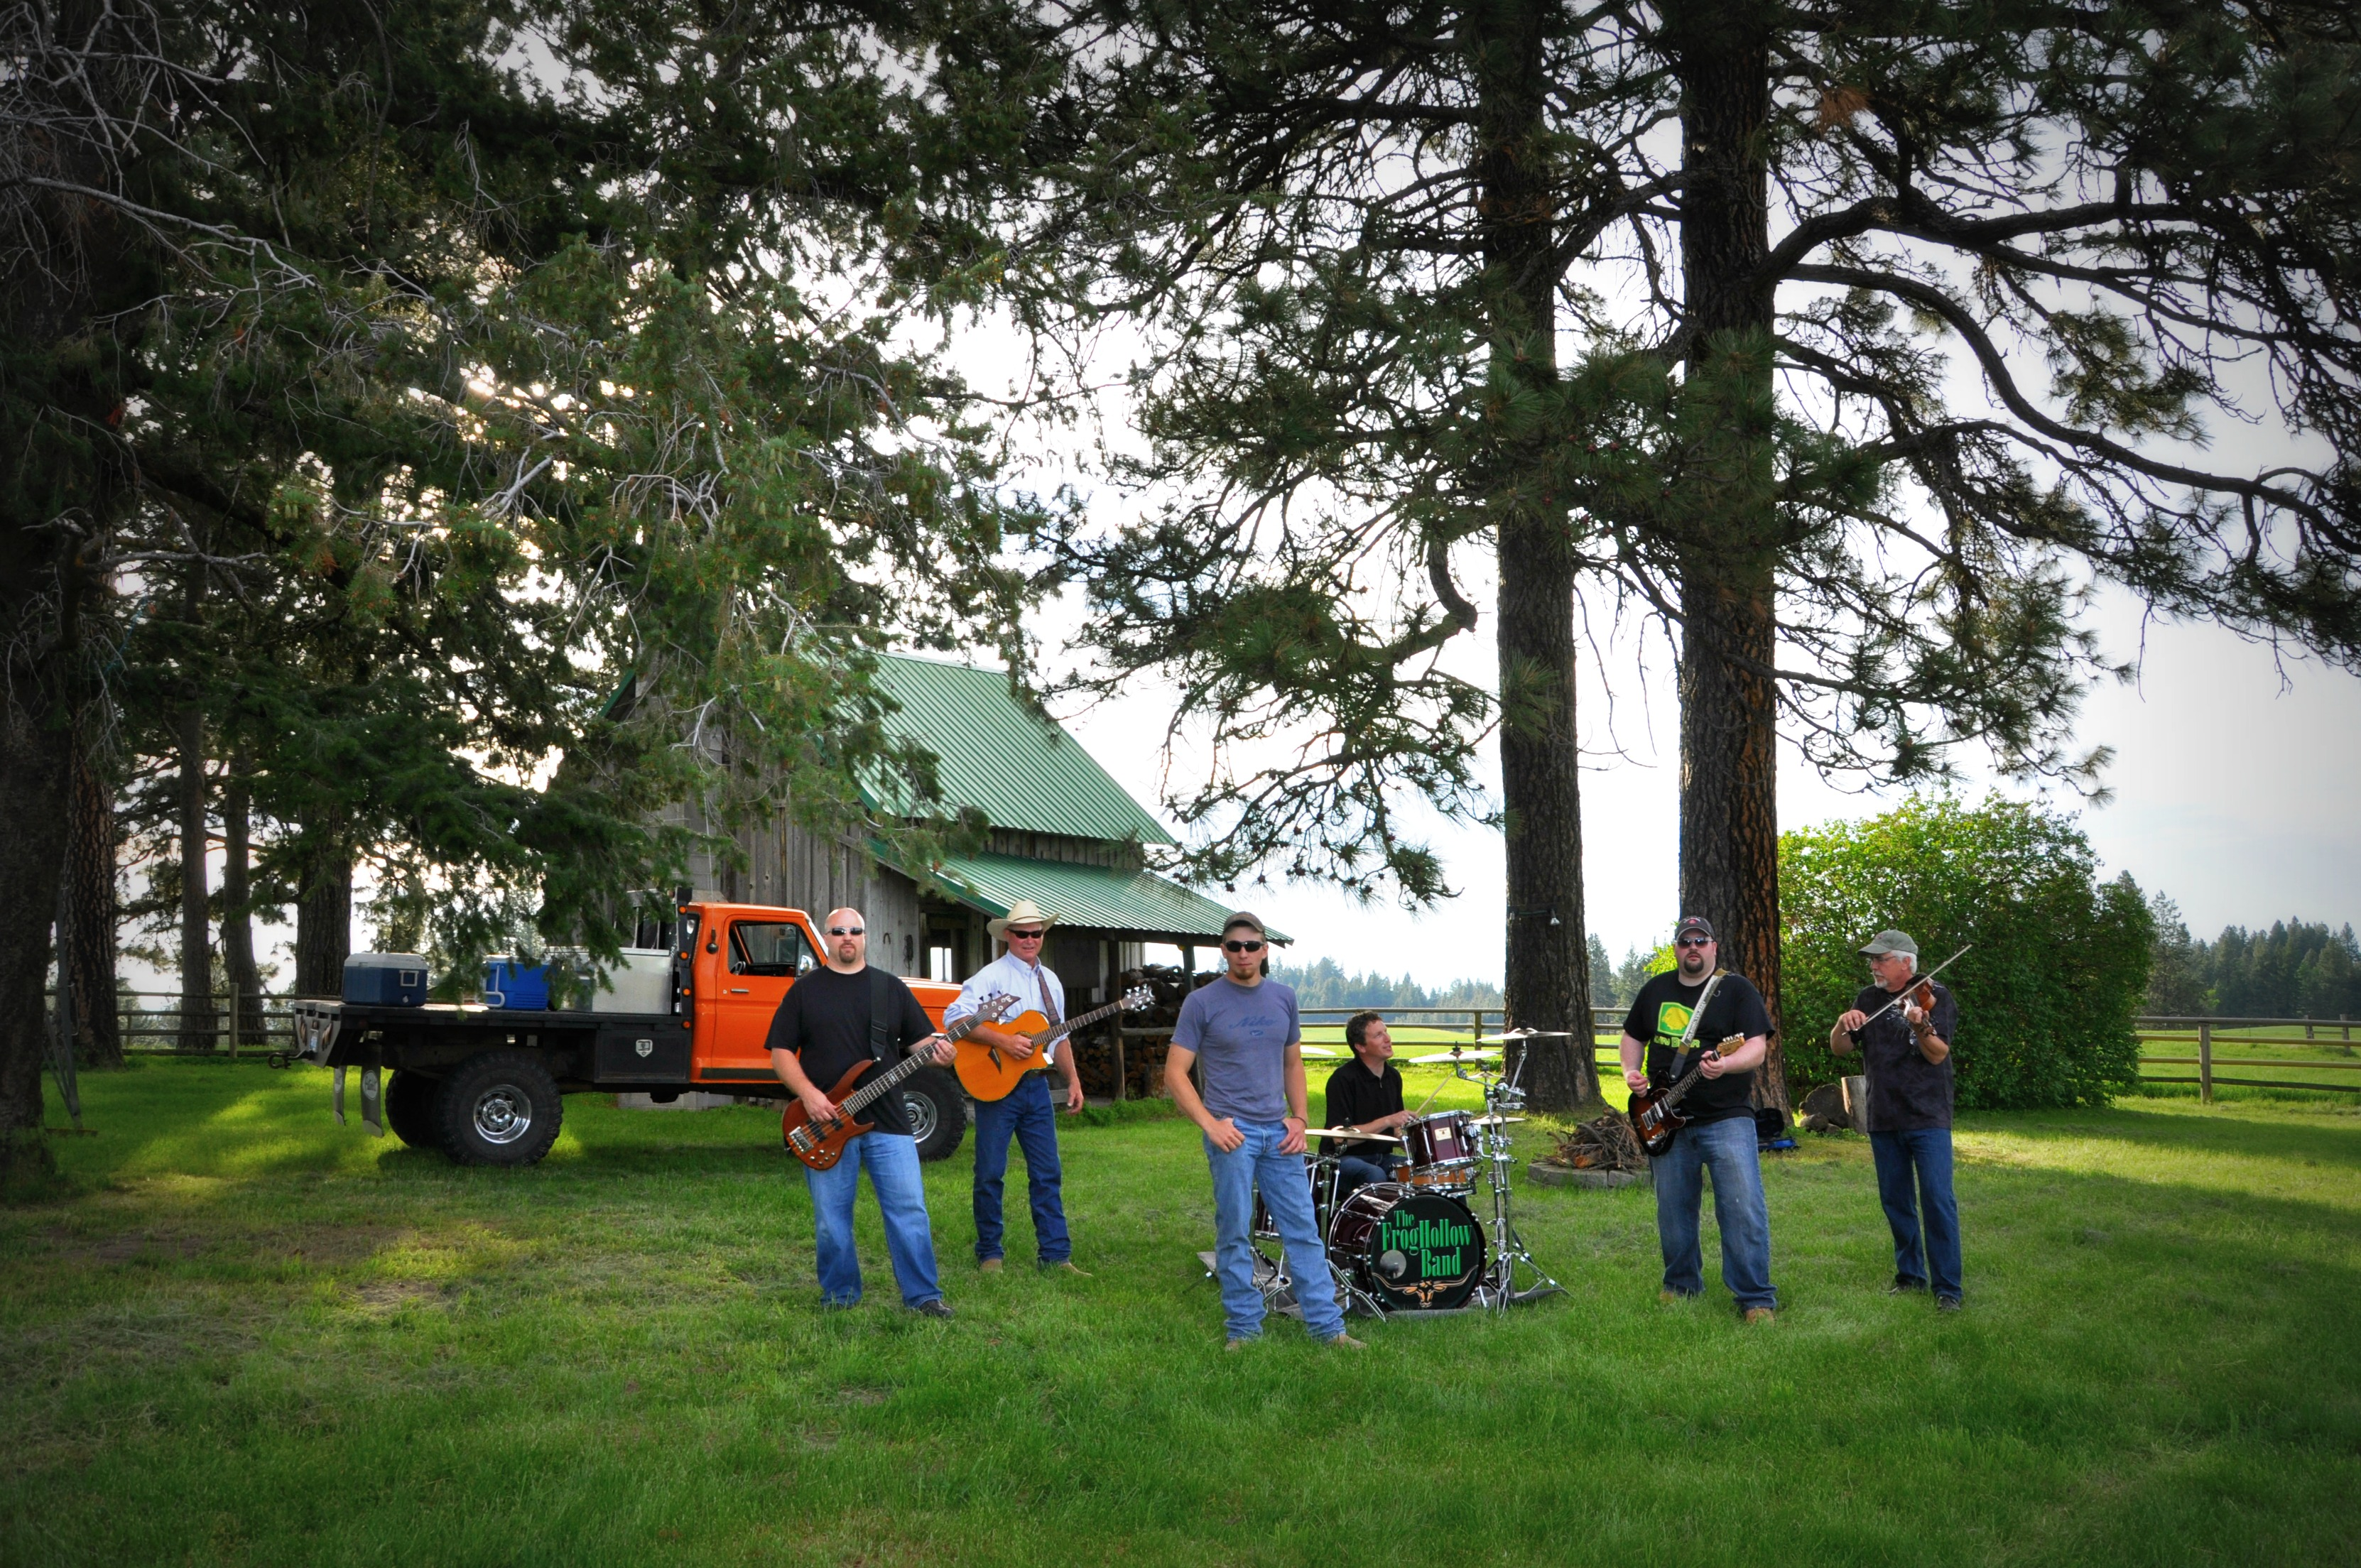 Walla Walla's FrogHollow Band brings high energy country to Pomeroy